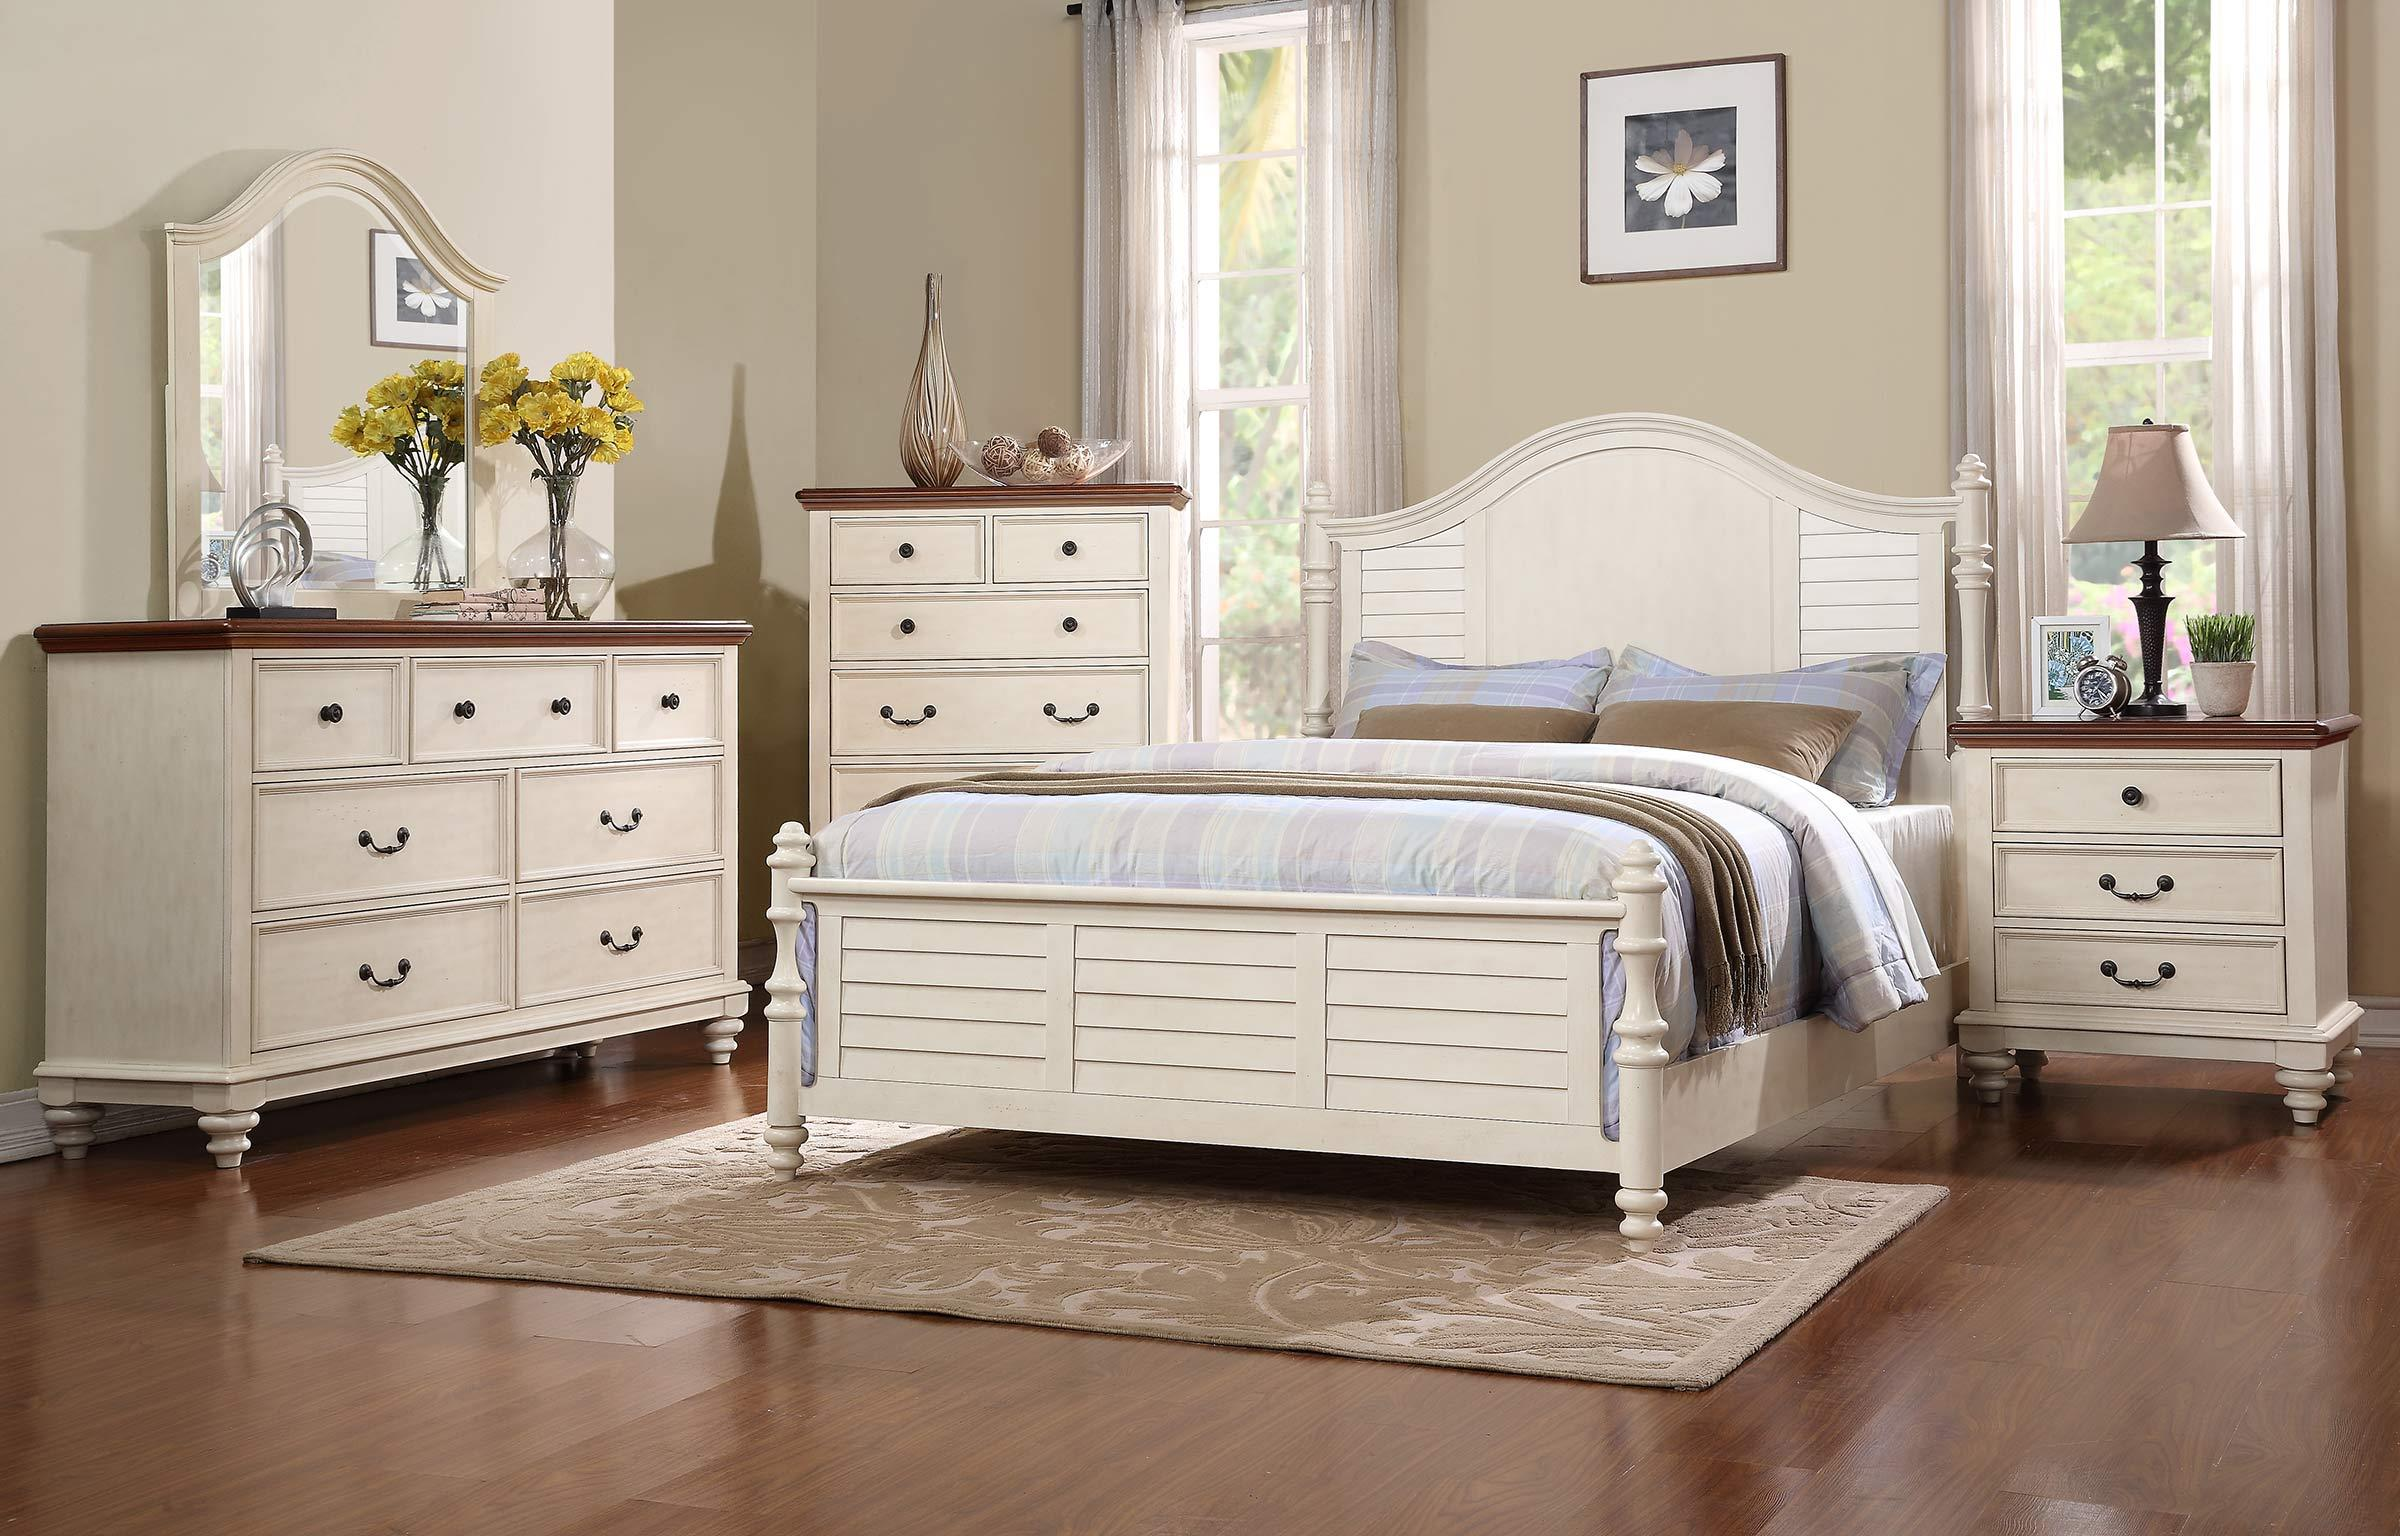 Winners ly Palm Beach King Panel Bed with Turned Feet Lindy s